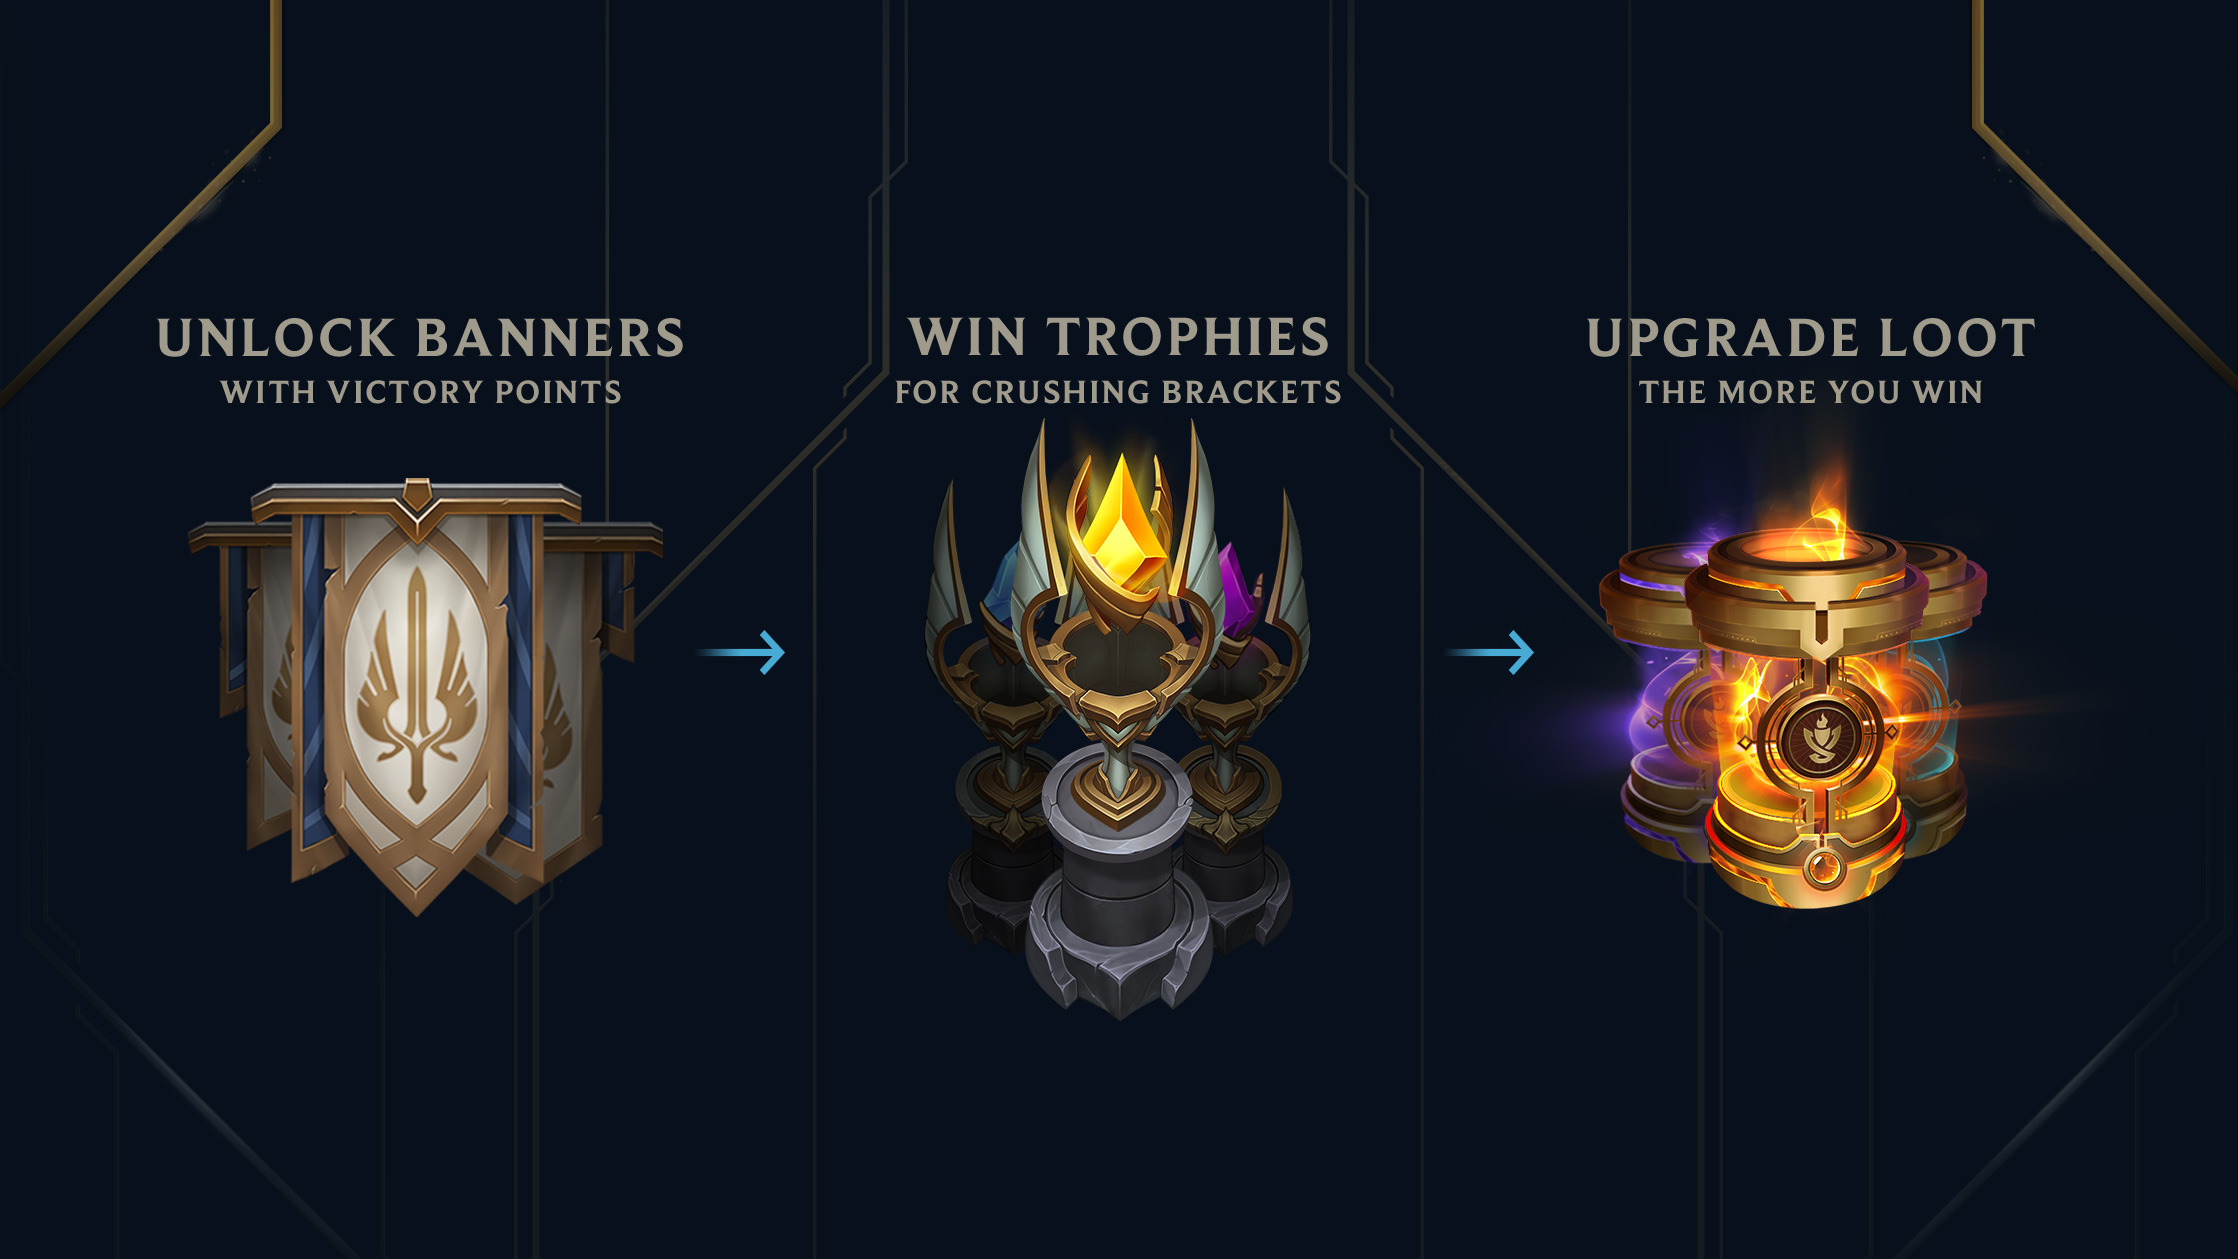 Clash gives players the chance to unlock many exclusive new rewards.